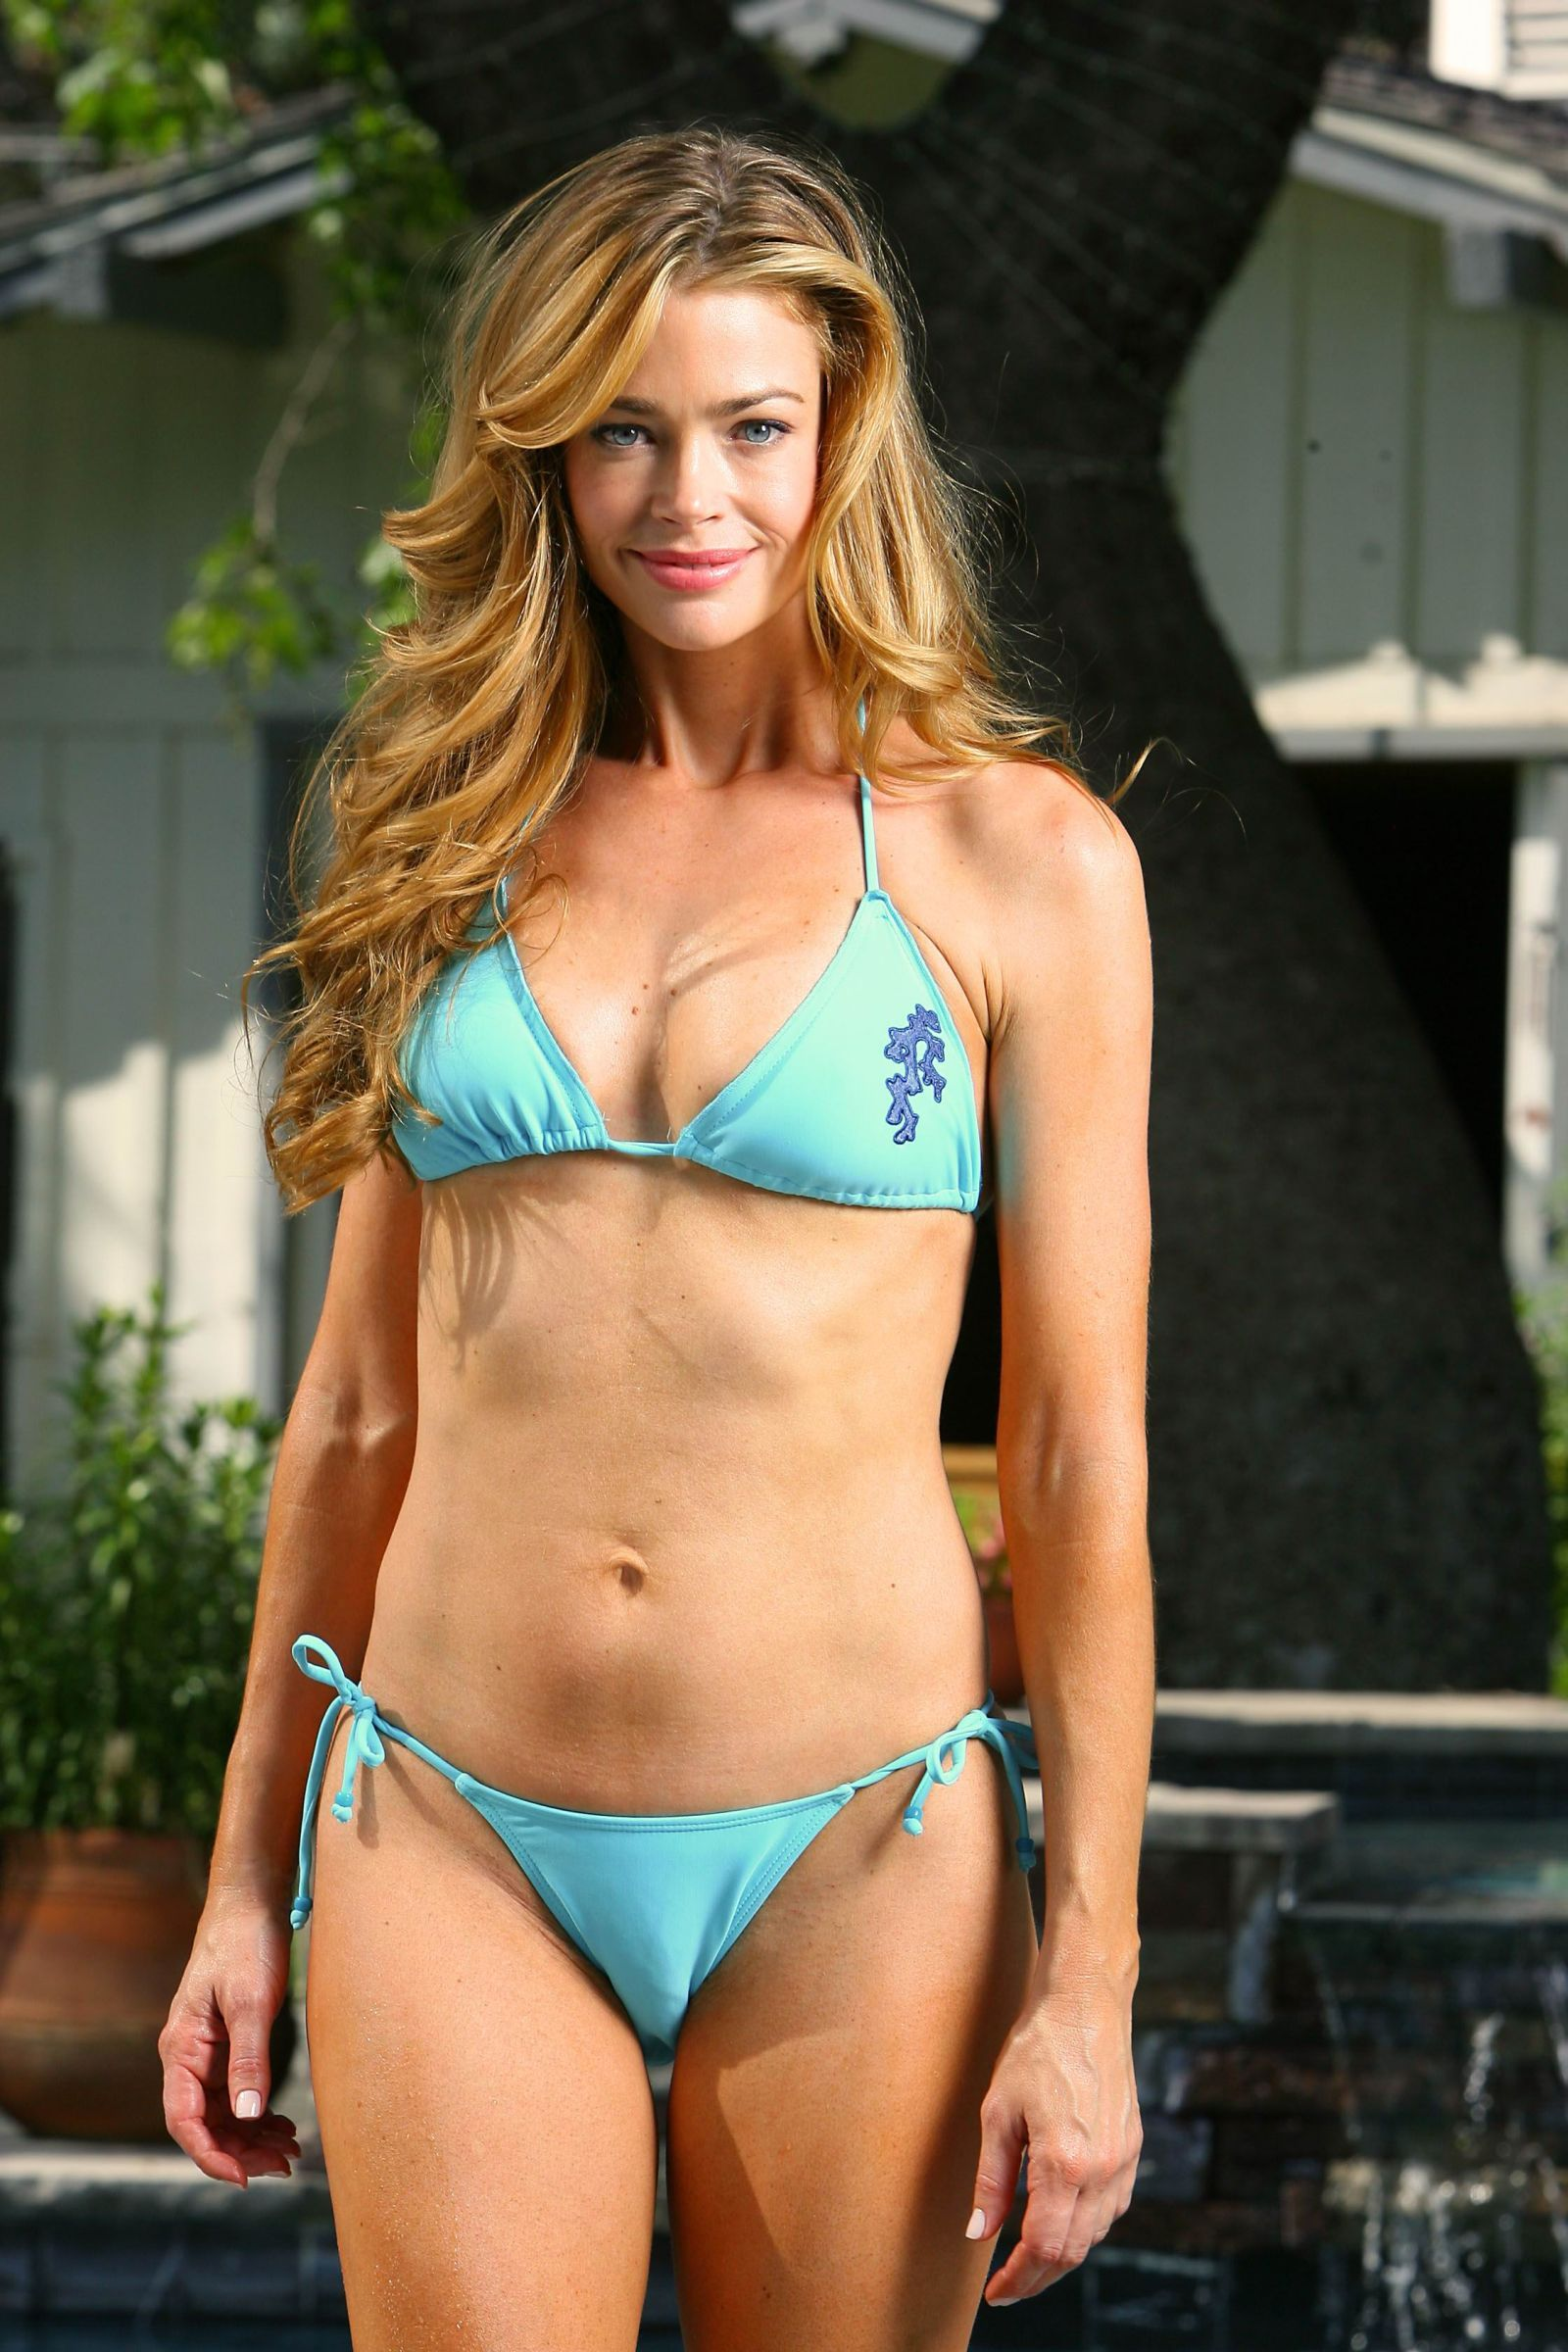 denise richards | Denise Richards | Pinterest